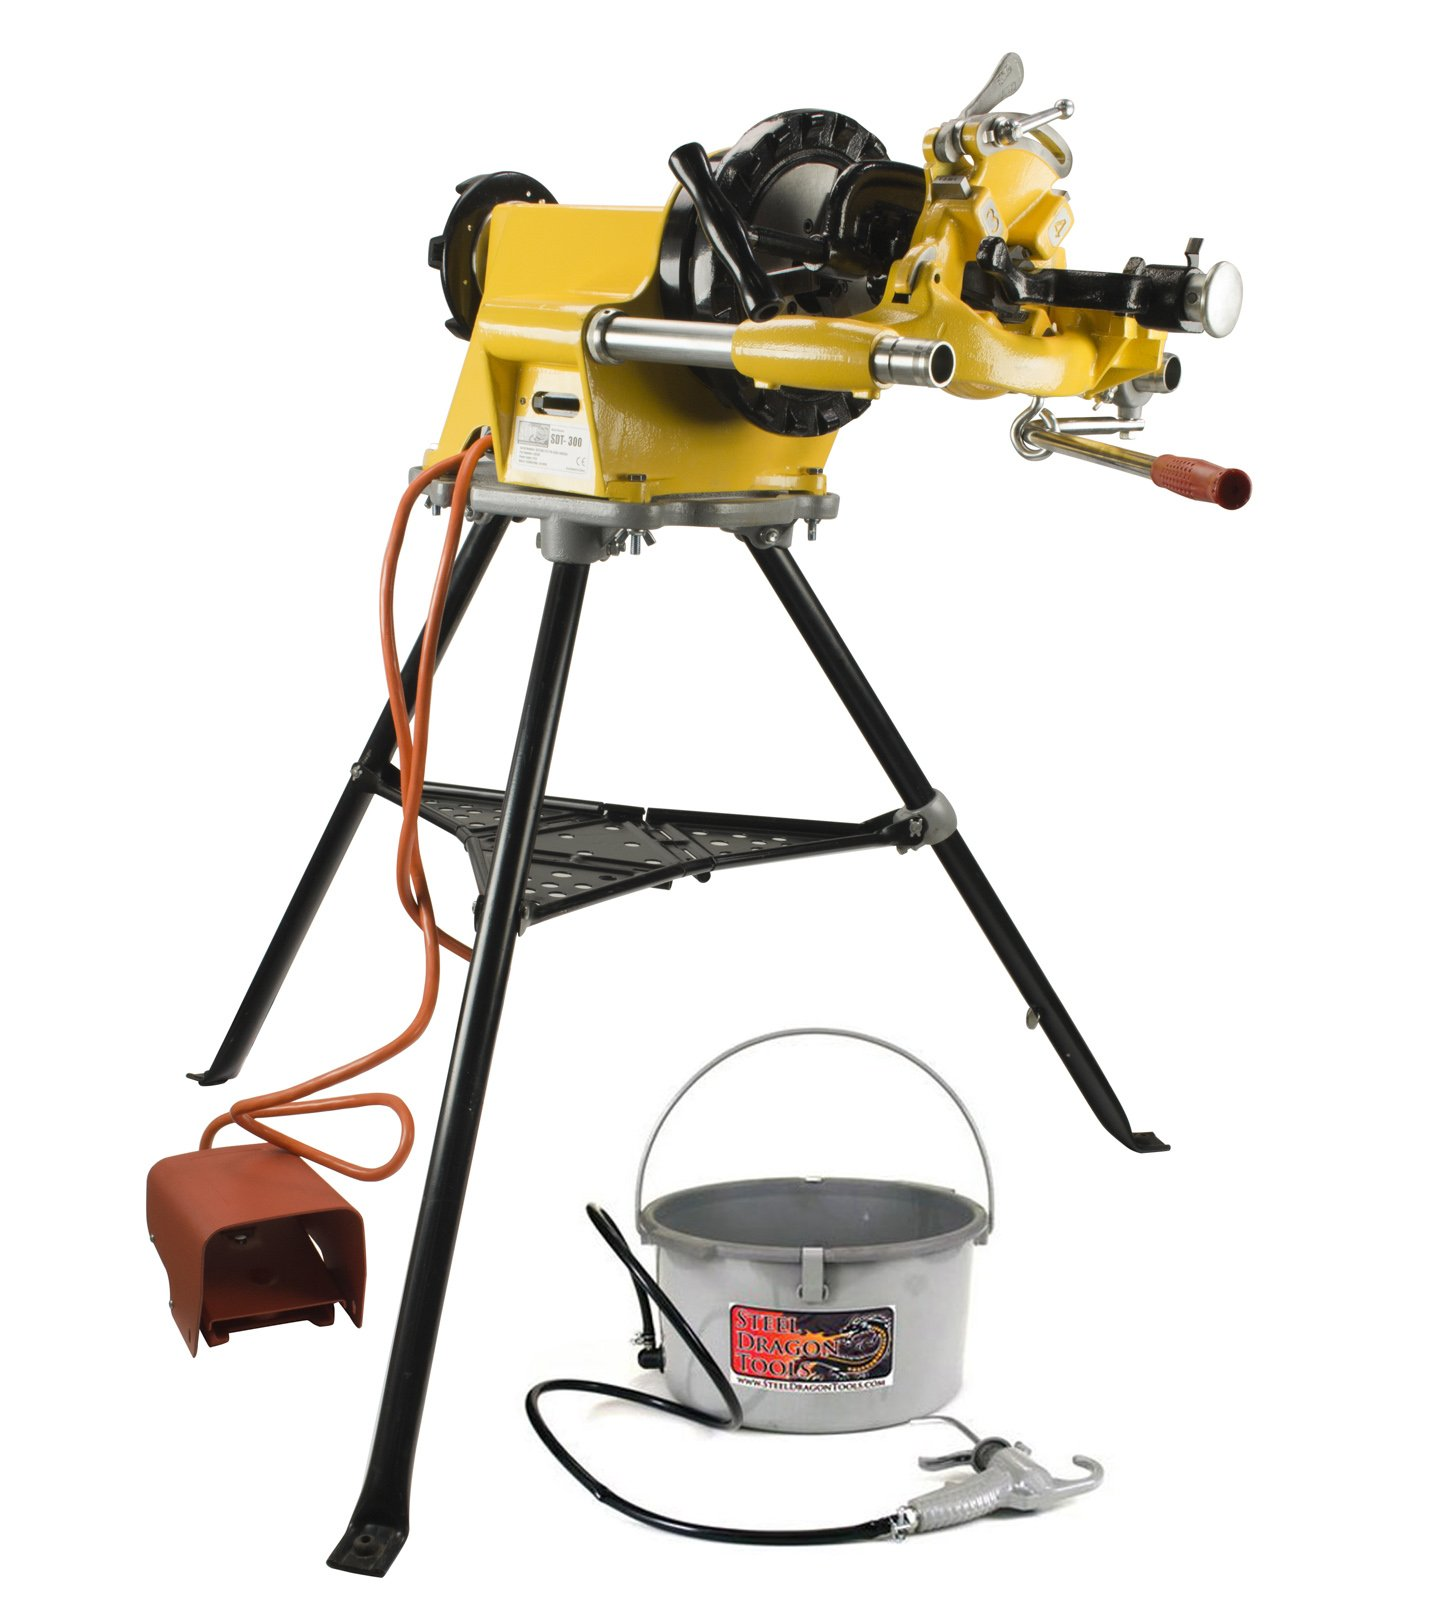 Steel Dragon Tools 300 Pipe Threading Machine Includes 811A Die Head, 418 Oiler, 1206 Stand, fits RIDGID 15682